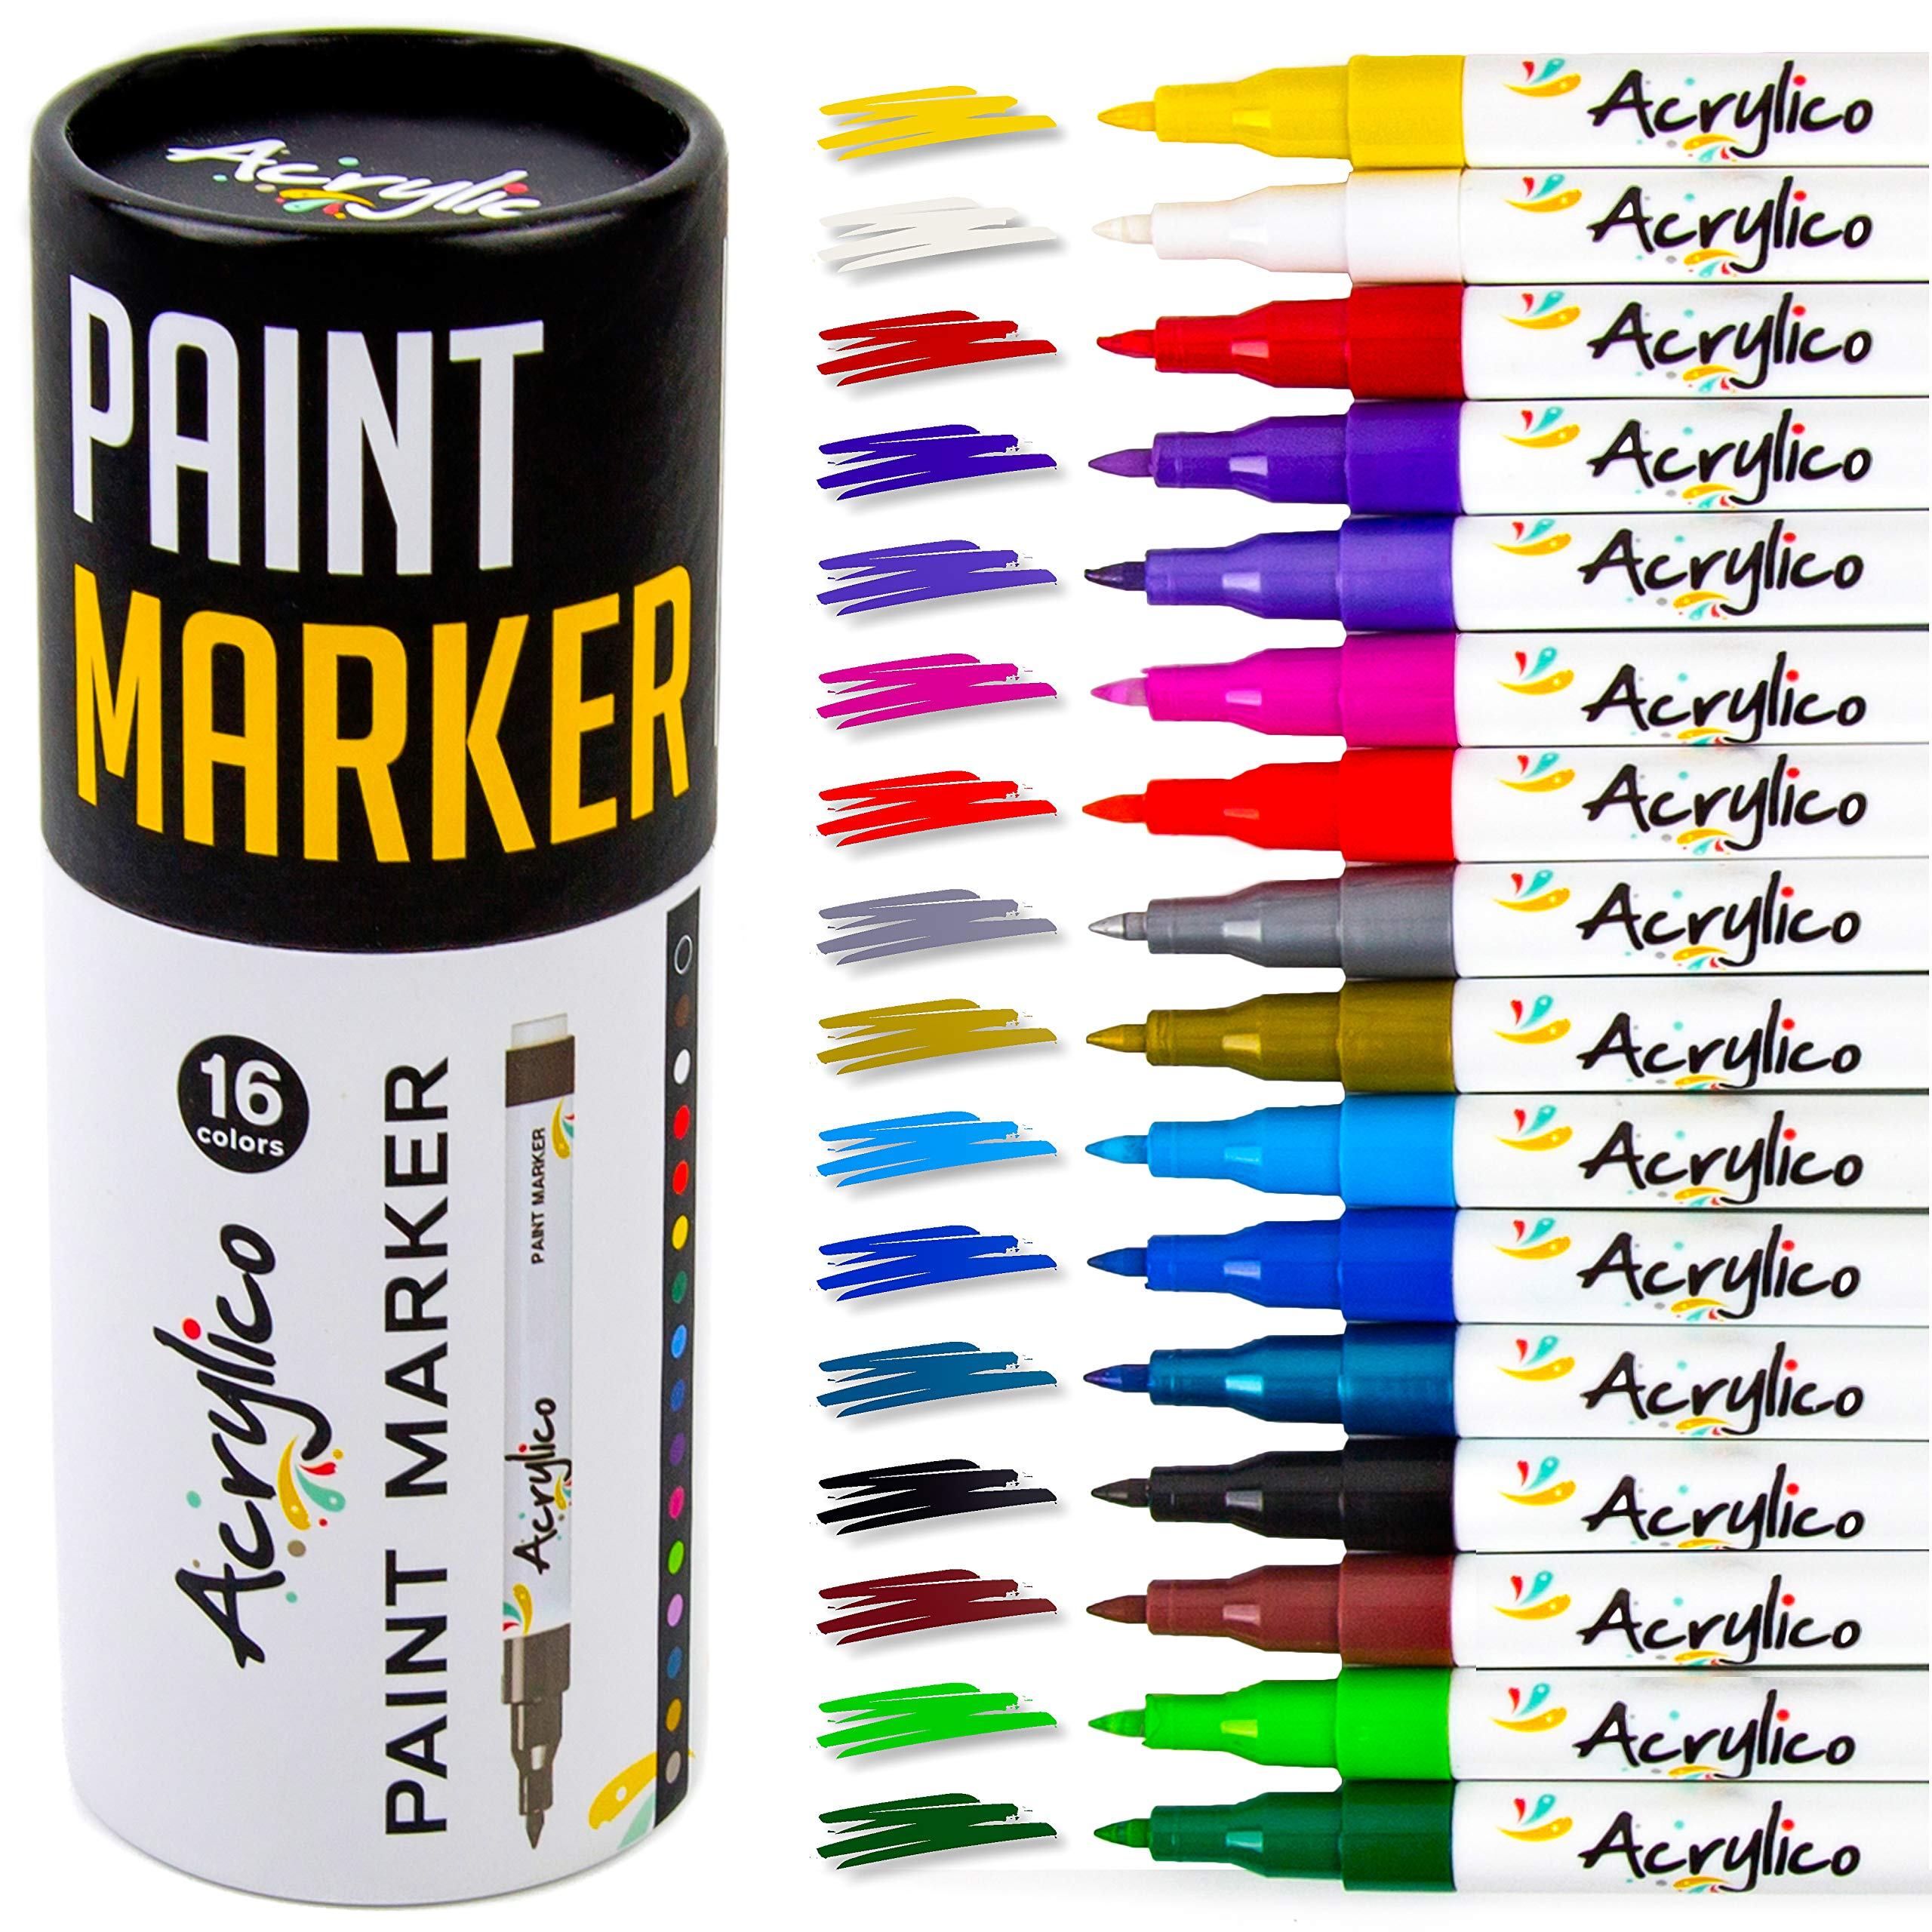 Acrylico Markers Multi Surface Premium Pack | Set of 16 Vibrant Colors Acrylic Paint Pens | Extra-Fine Tip, Opaque Ink, Non-Toxic by Acrylico Markers